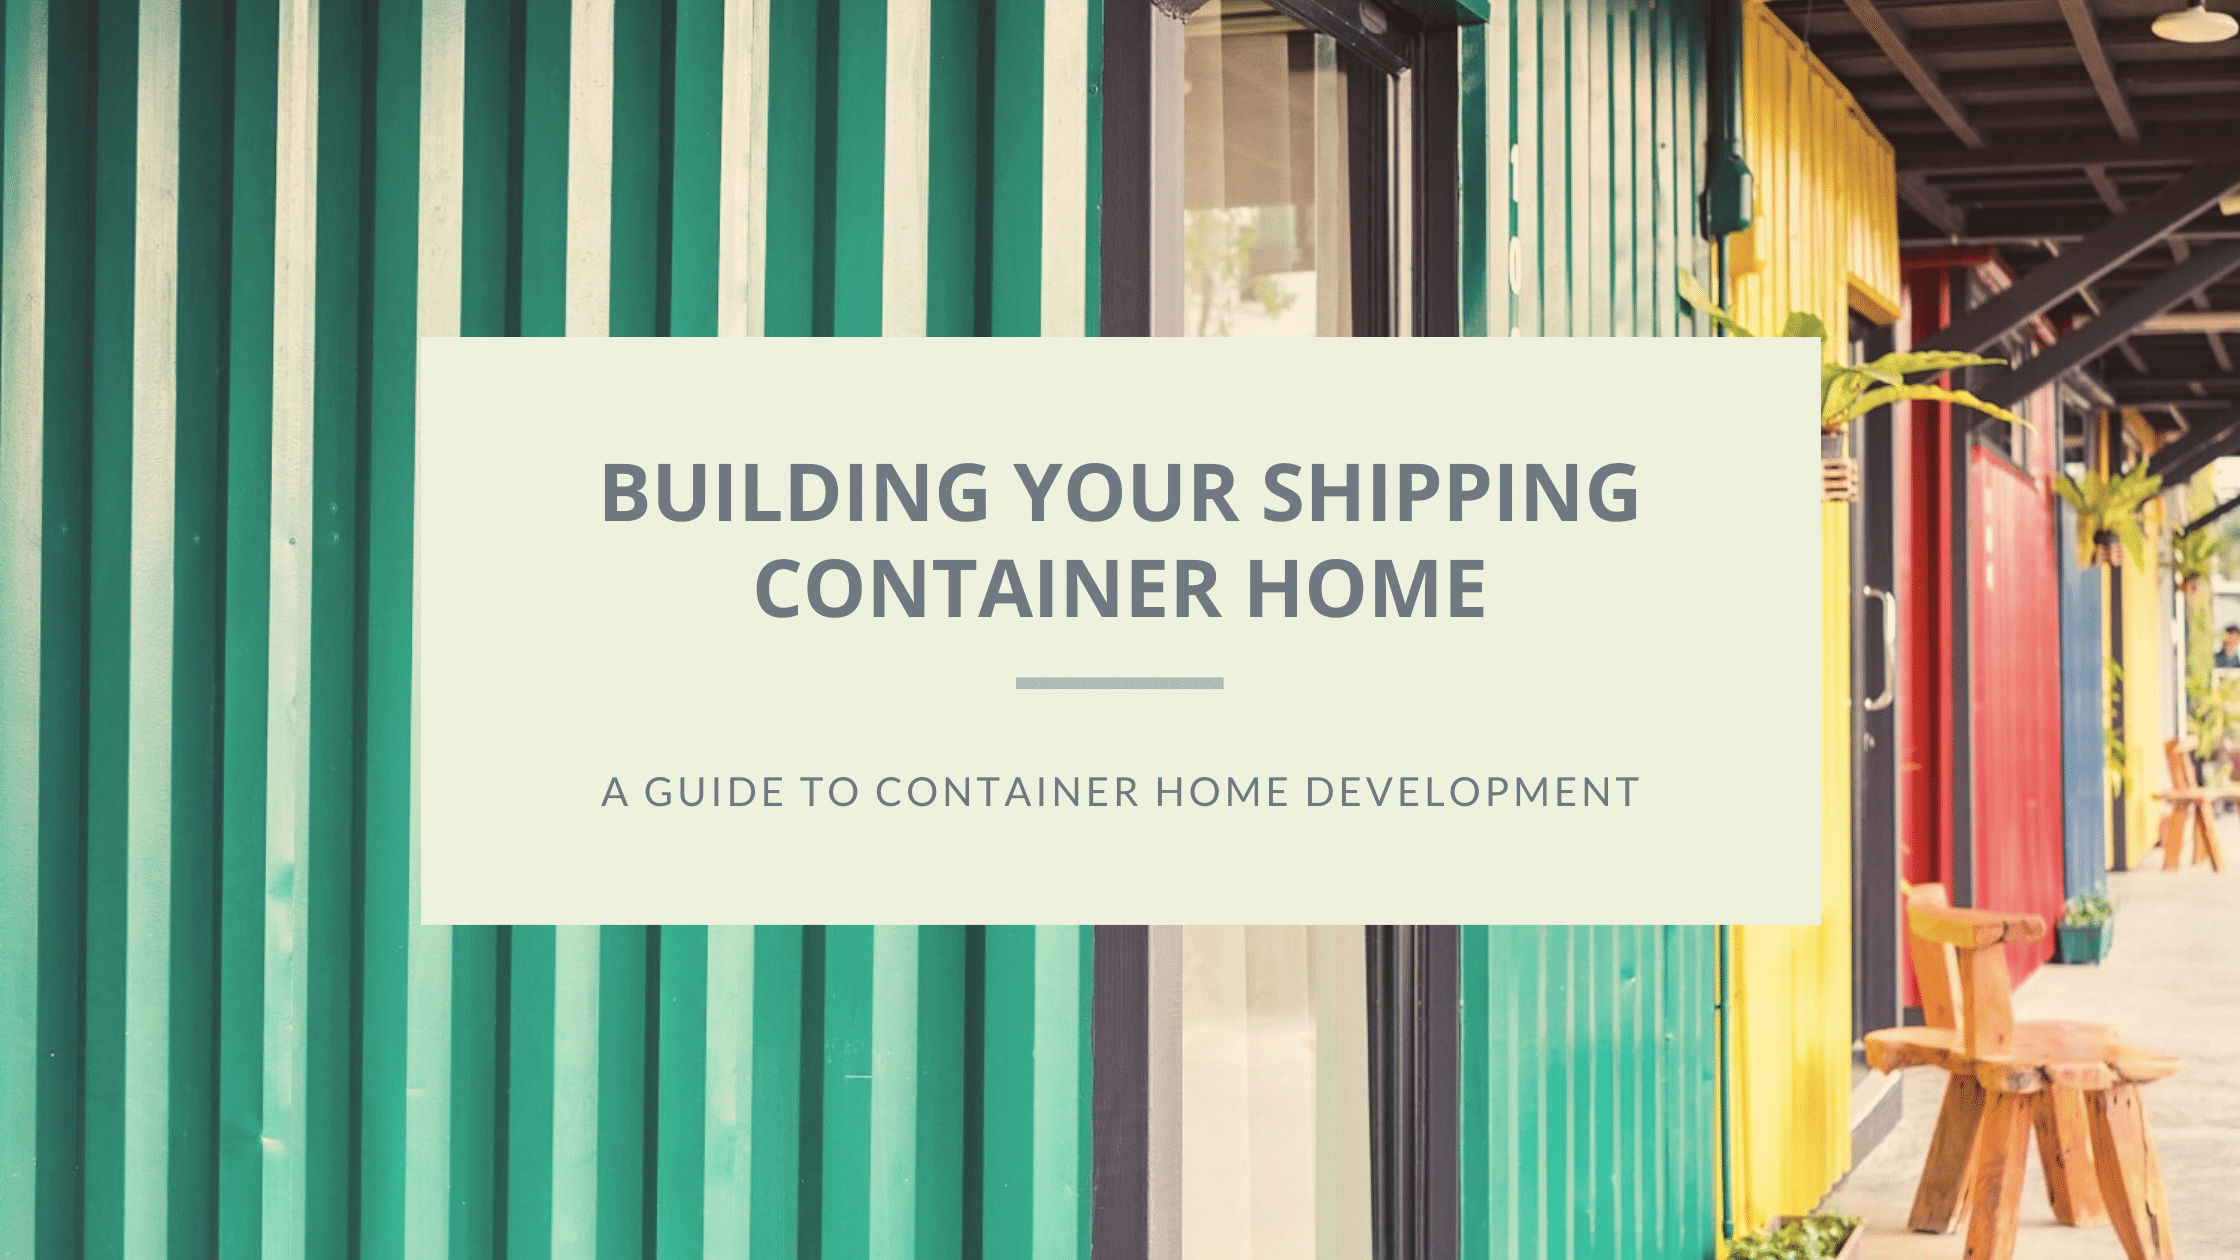 shipping container home featured